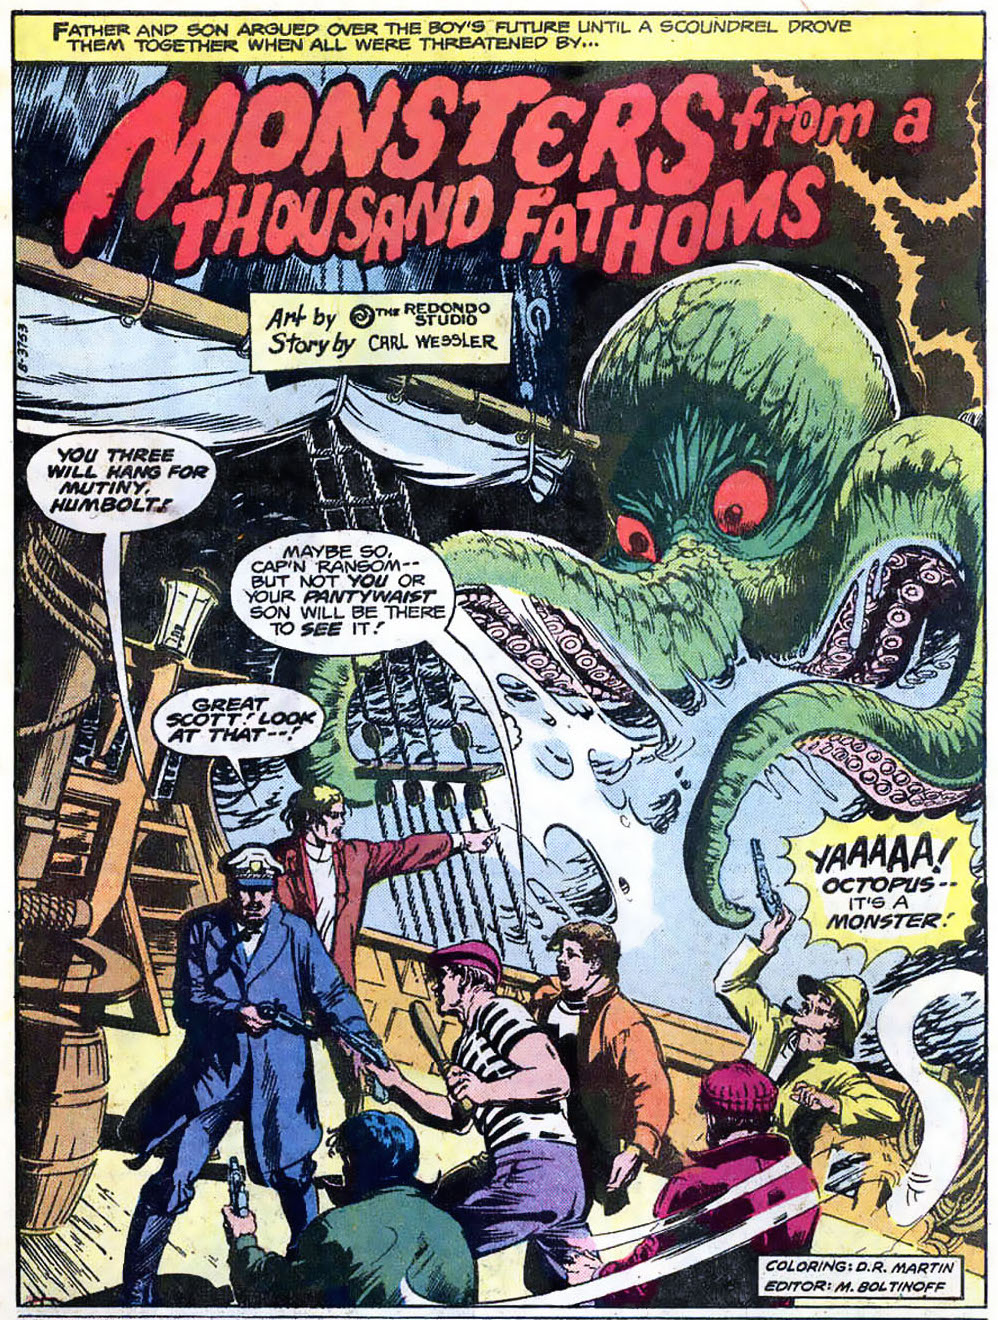 Unexpected185-Monster-of-a-thousand-fathoms